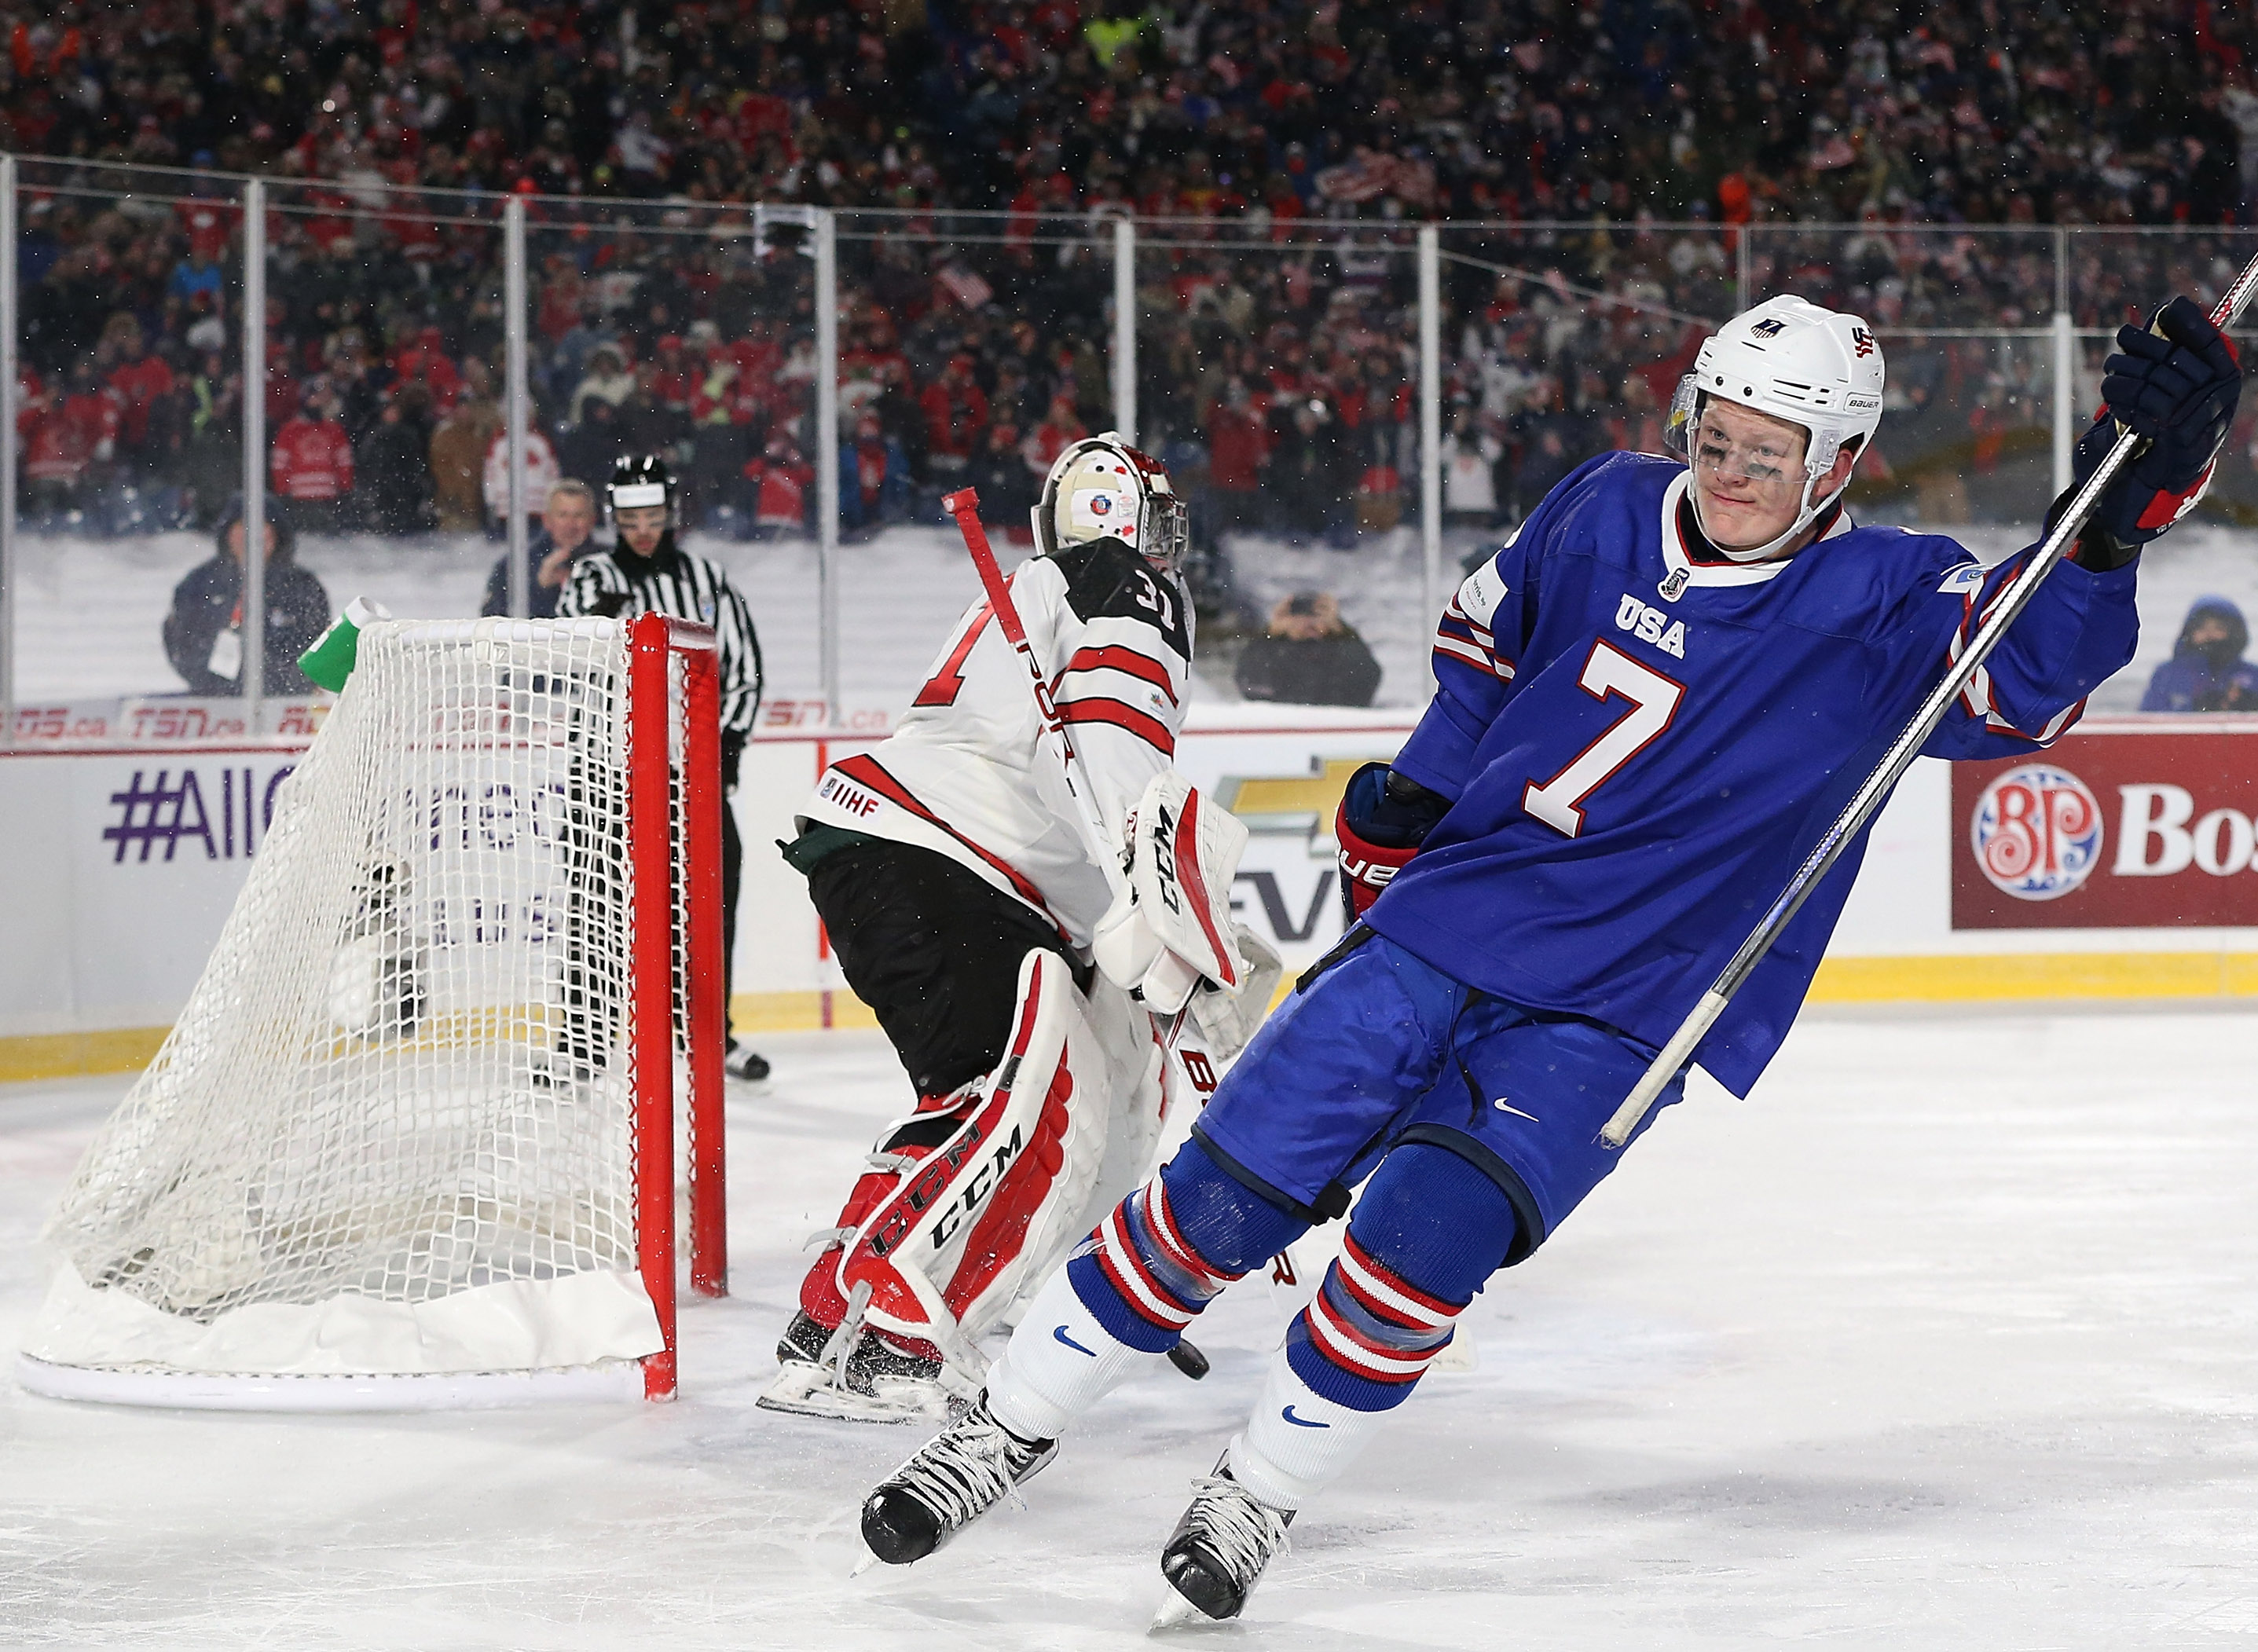 Brady Tkachuk #7 of United States scores a goal against Carter Hart #31 of Canada in the shootout against Canada during the IIHF World Junior Championship at New Era Field on December 29, 2017 in Buffalo, New York. The United States beat Canada 4-3.